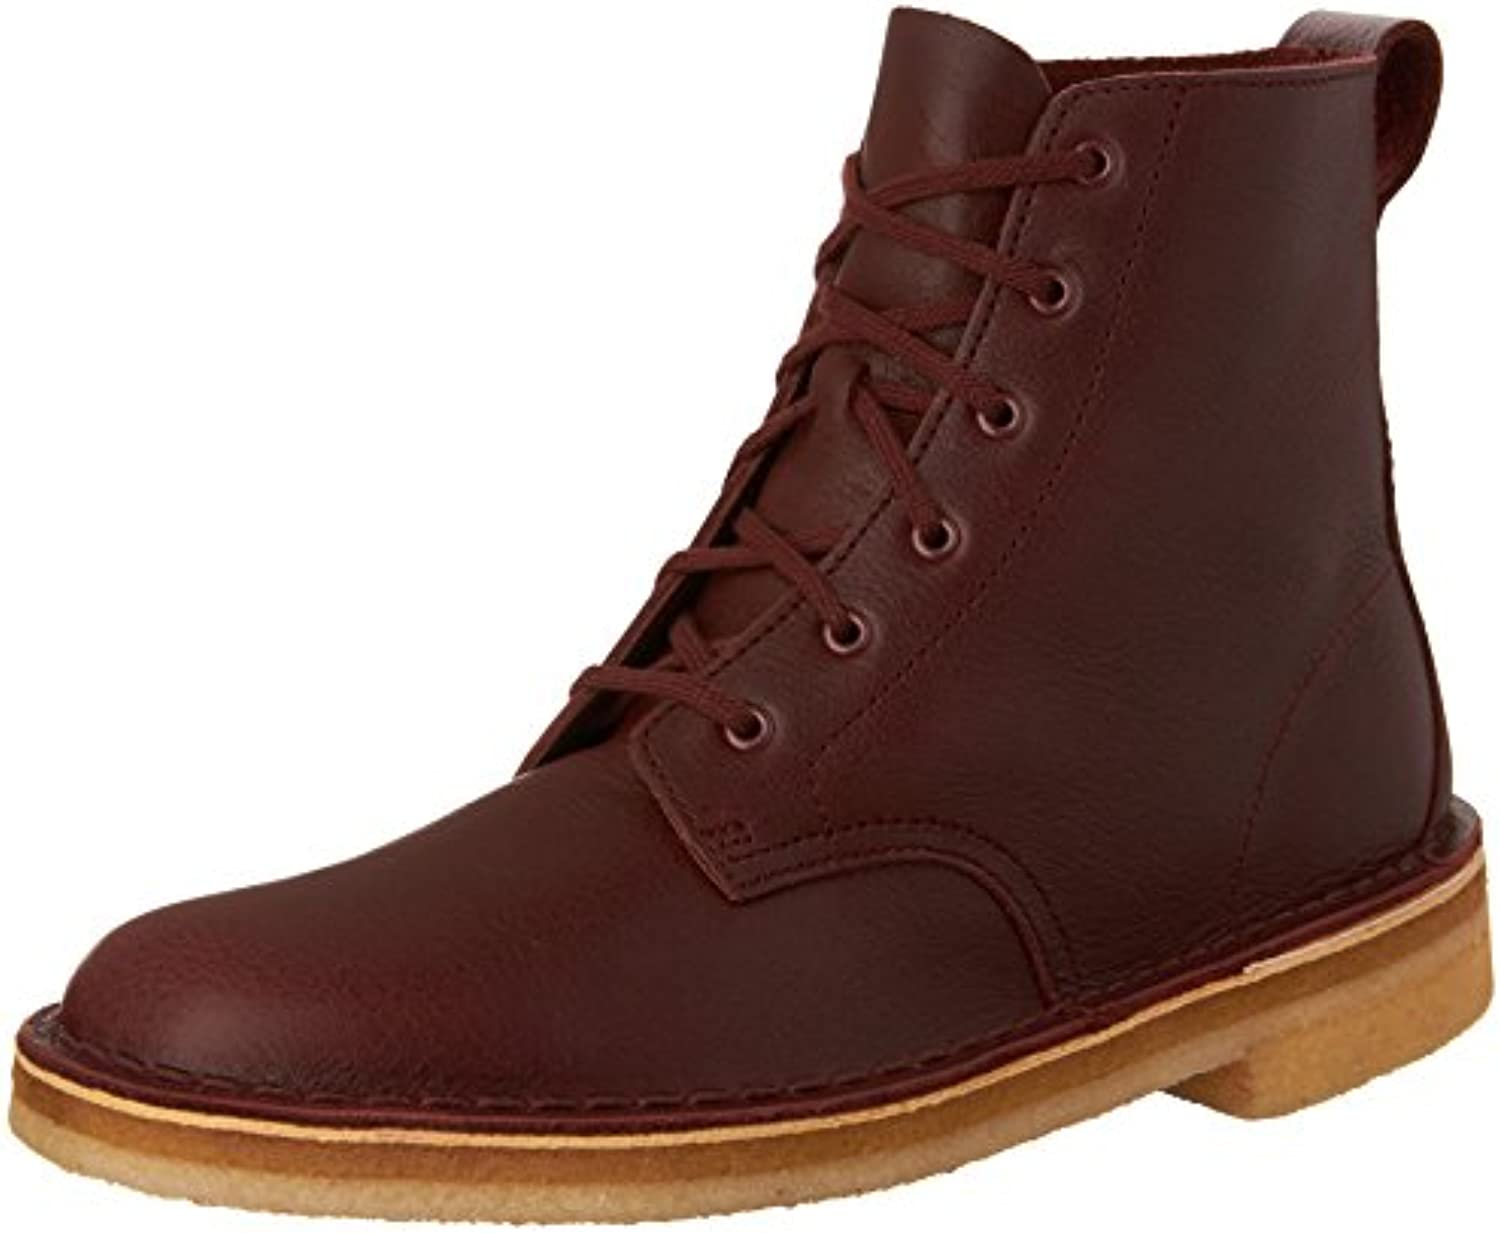 Clarks   Mens Desert Mali Low Boot  Size: 12 D(M) US  Color: Burgundy Tumbled Leather